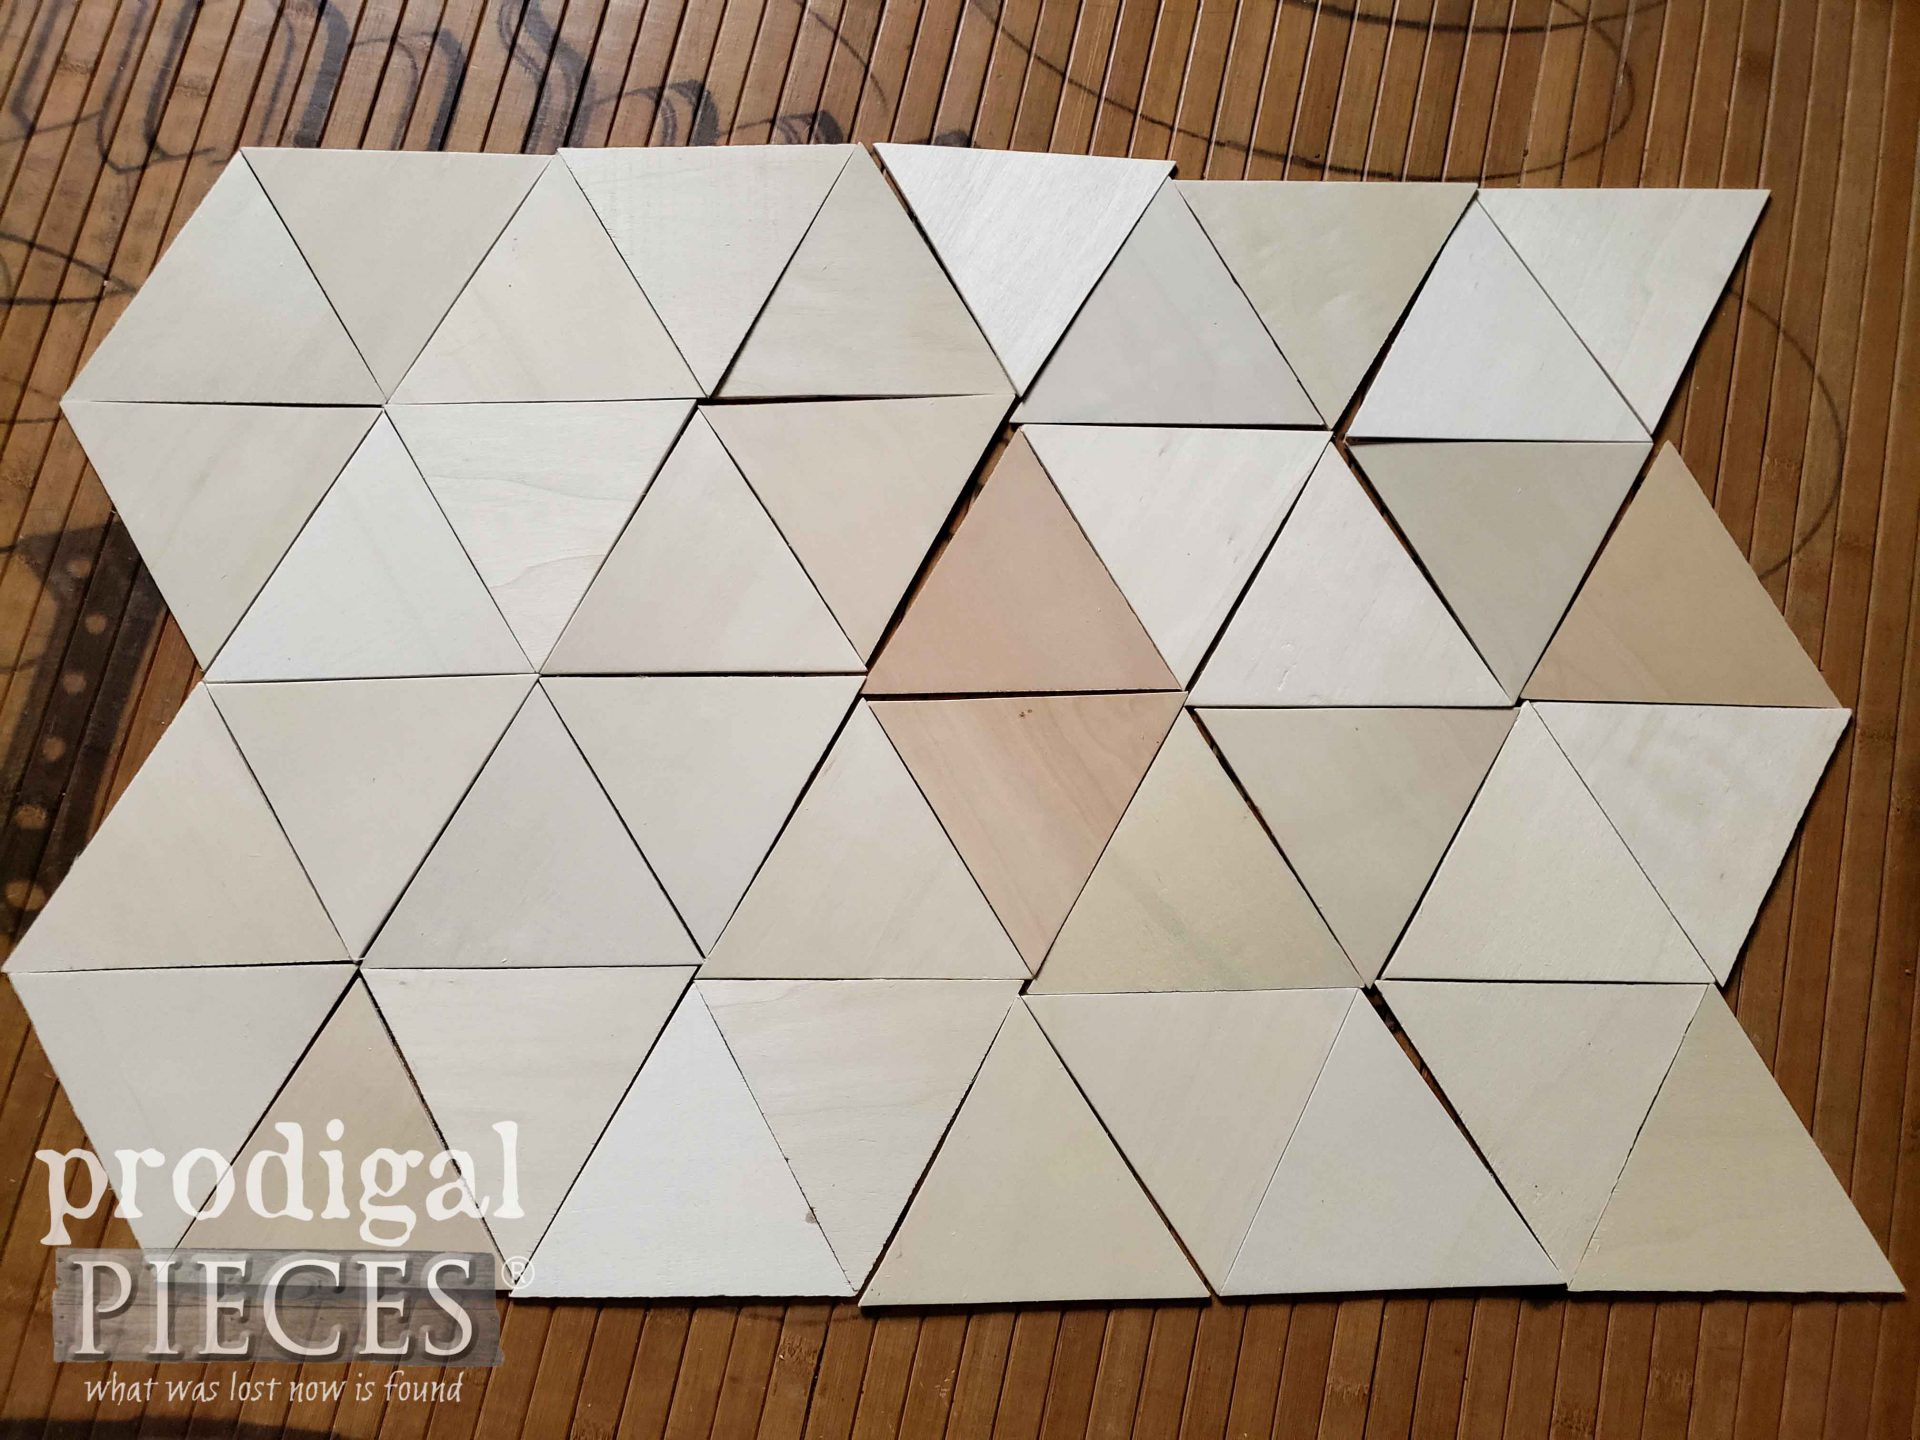 Rough DIY Mountain Wall Art Layout with Geometric Shapes by Prodigal Pieces | prodigalpieces.com